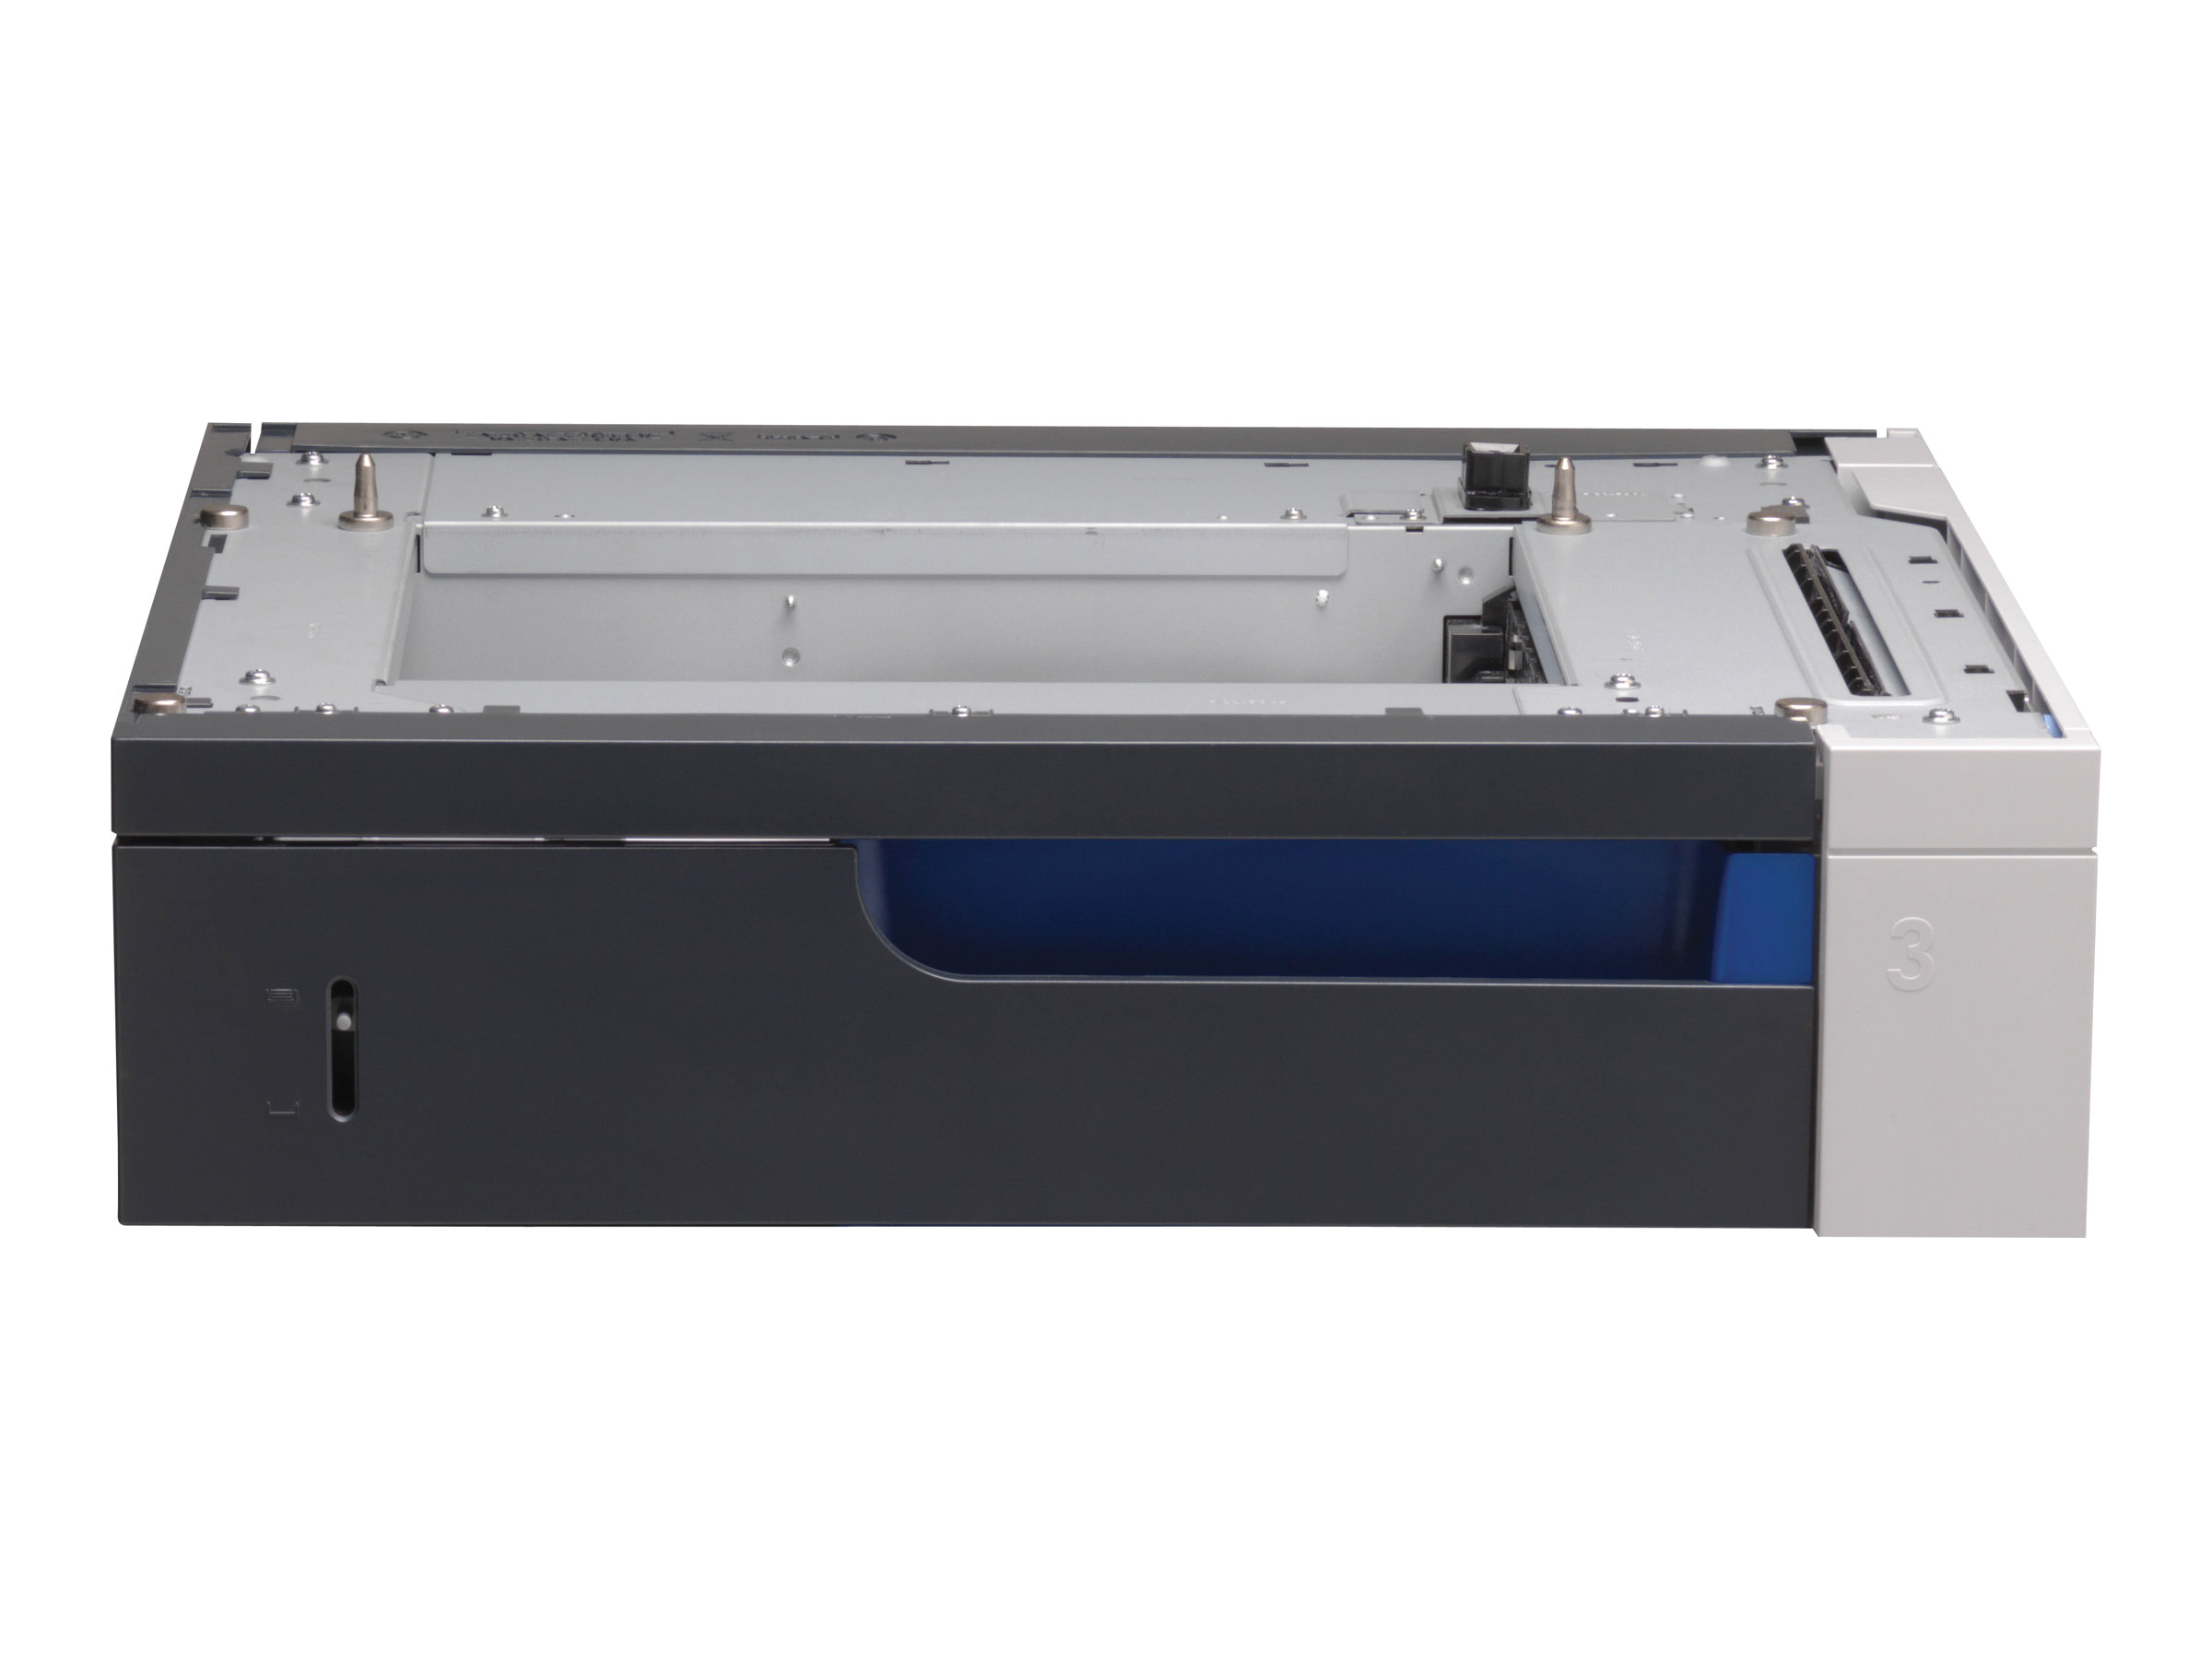 HP - Medienschacht - 500 Blätter in 1 Schubladen (Trays) - für Color LaserJet Enterprise M750; LaserJet Enterprise MFP M775; Las